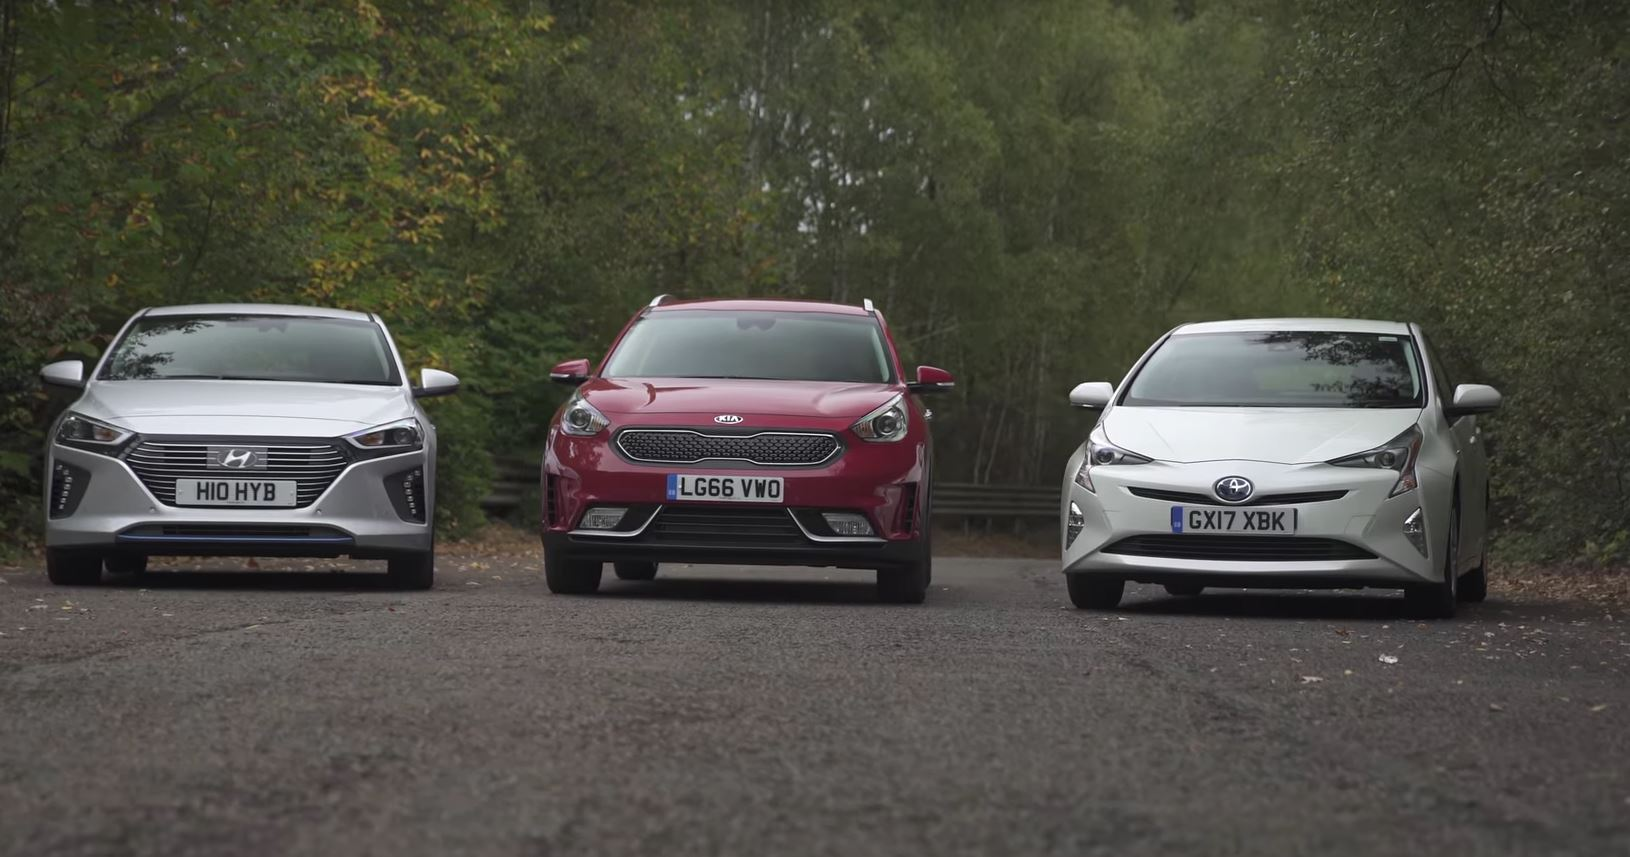 Toyota Prius Finally Takes On Hyundai Ioniq And Kia Niro Hybrids